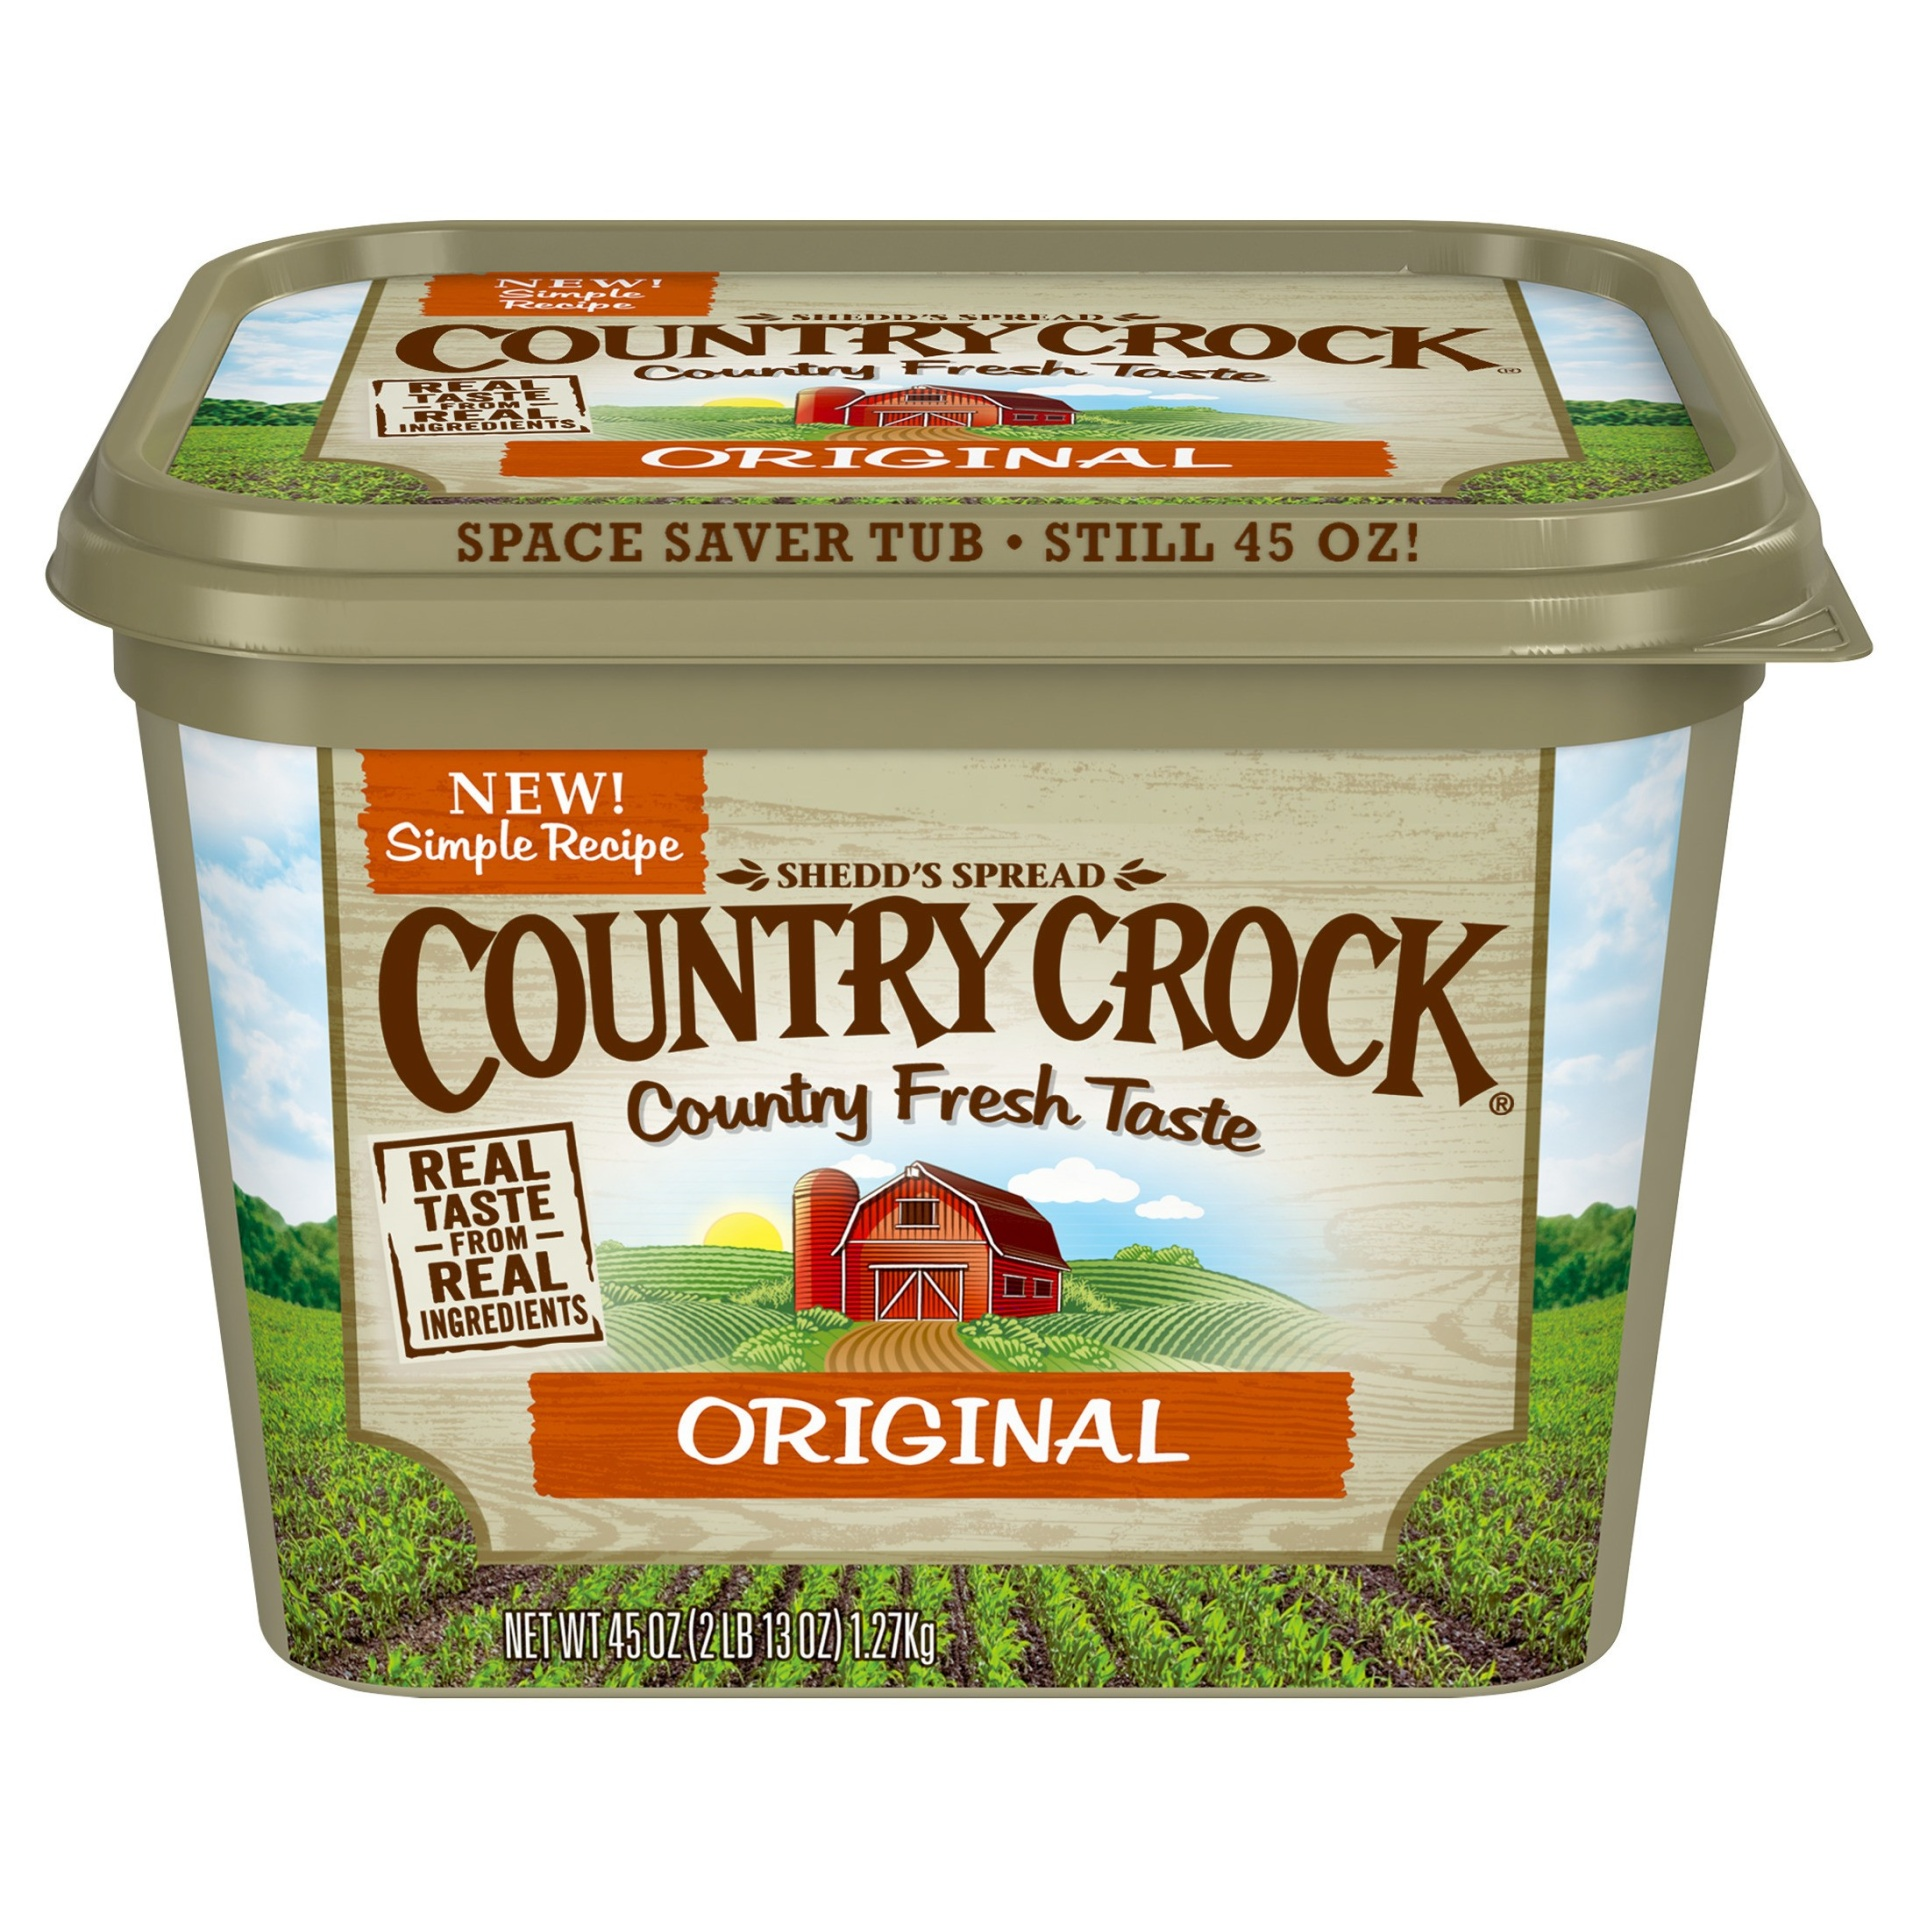 slide 1 of 1, Country Crock Original Vegetable Oil Spread,